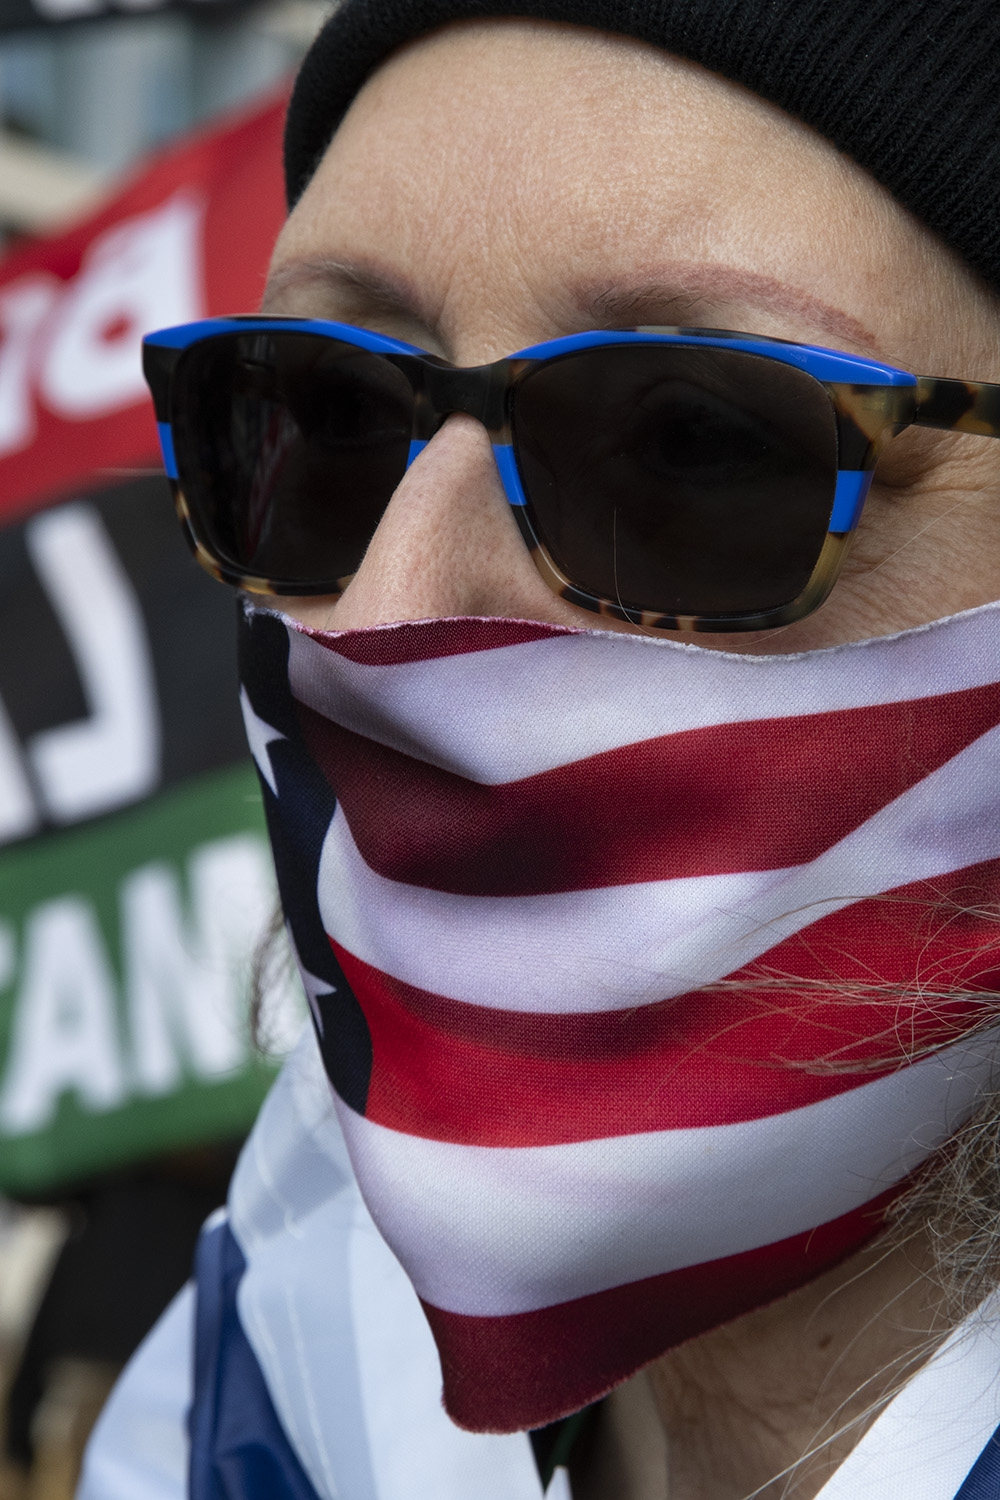 Image of a woman, wearing a black winter hat, tan and blue sunglasses, and an American flag bandana as a mask.